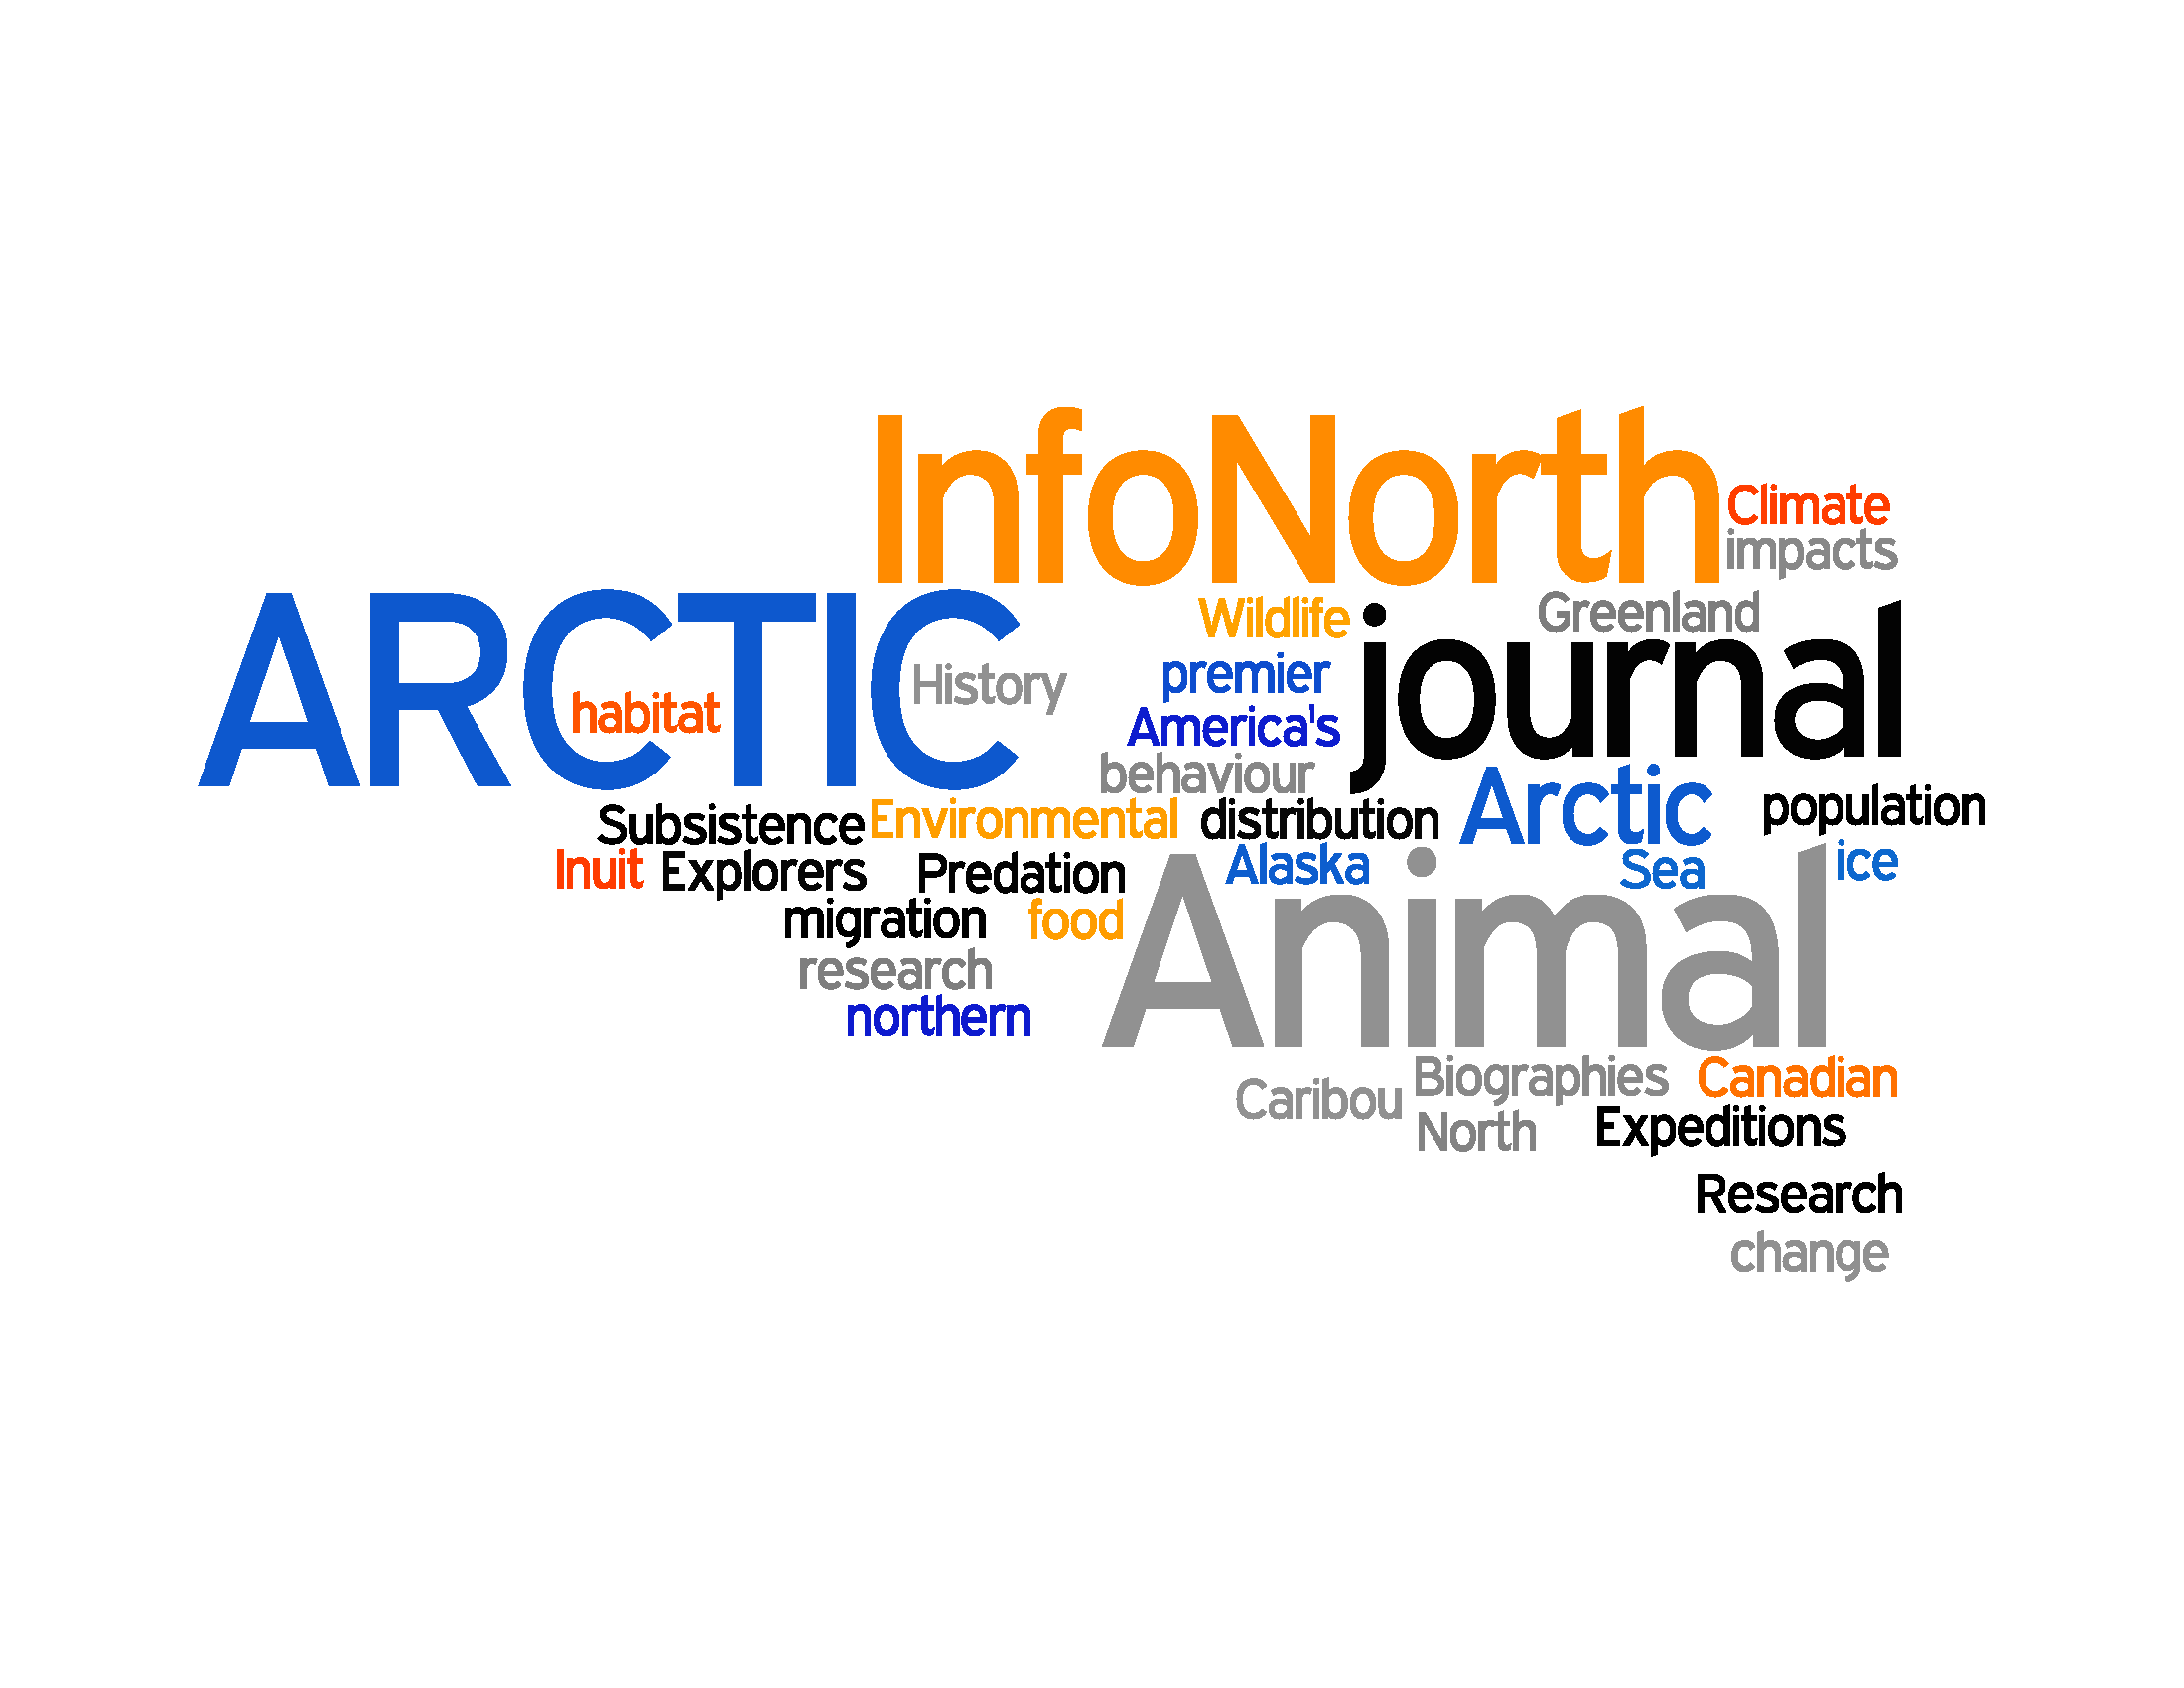 Arctic Wordle